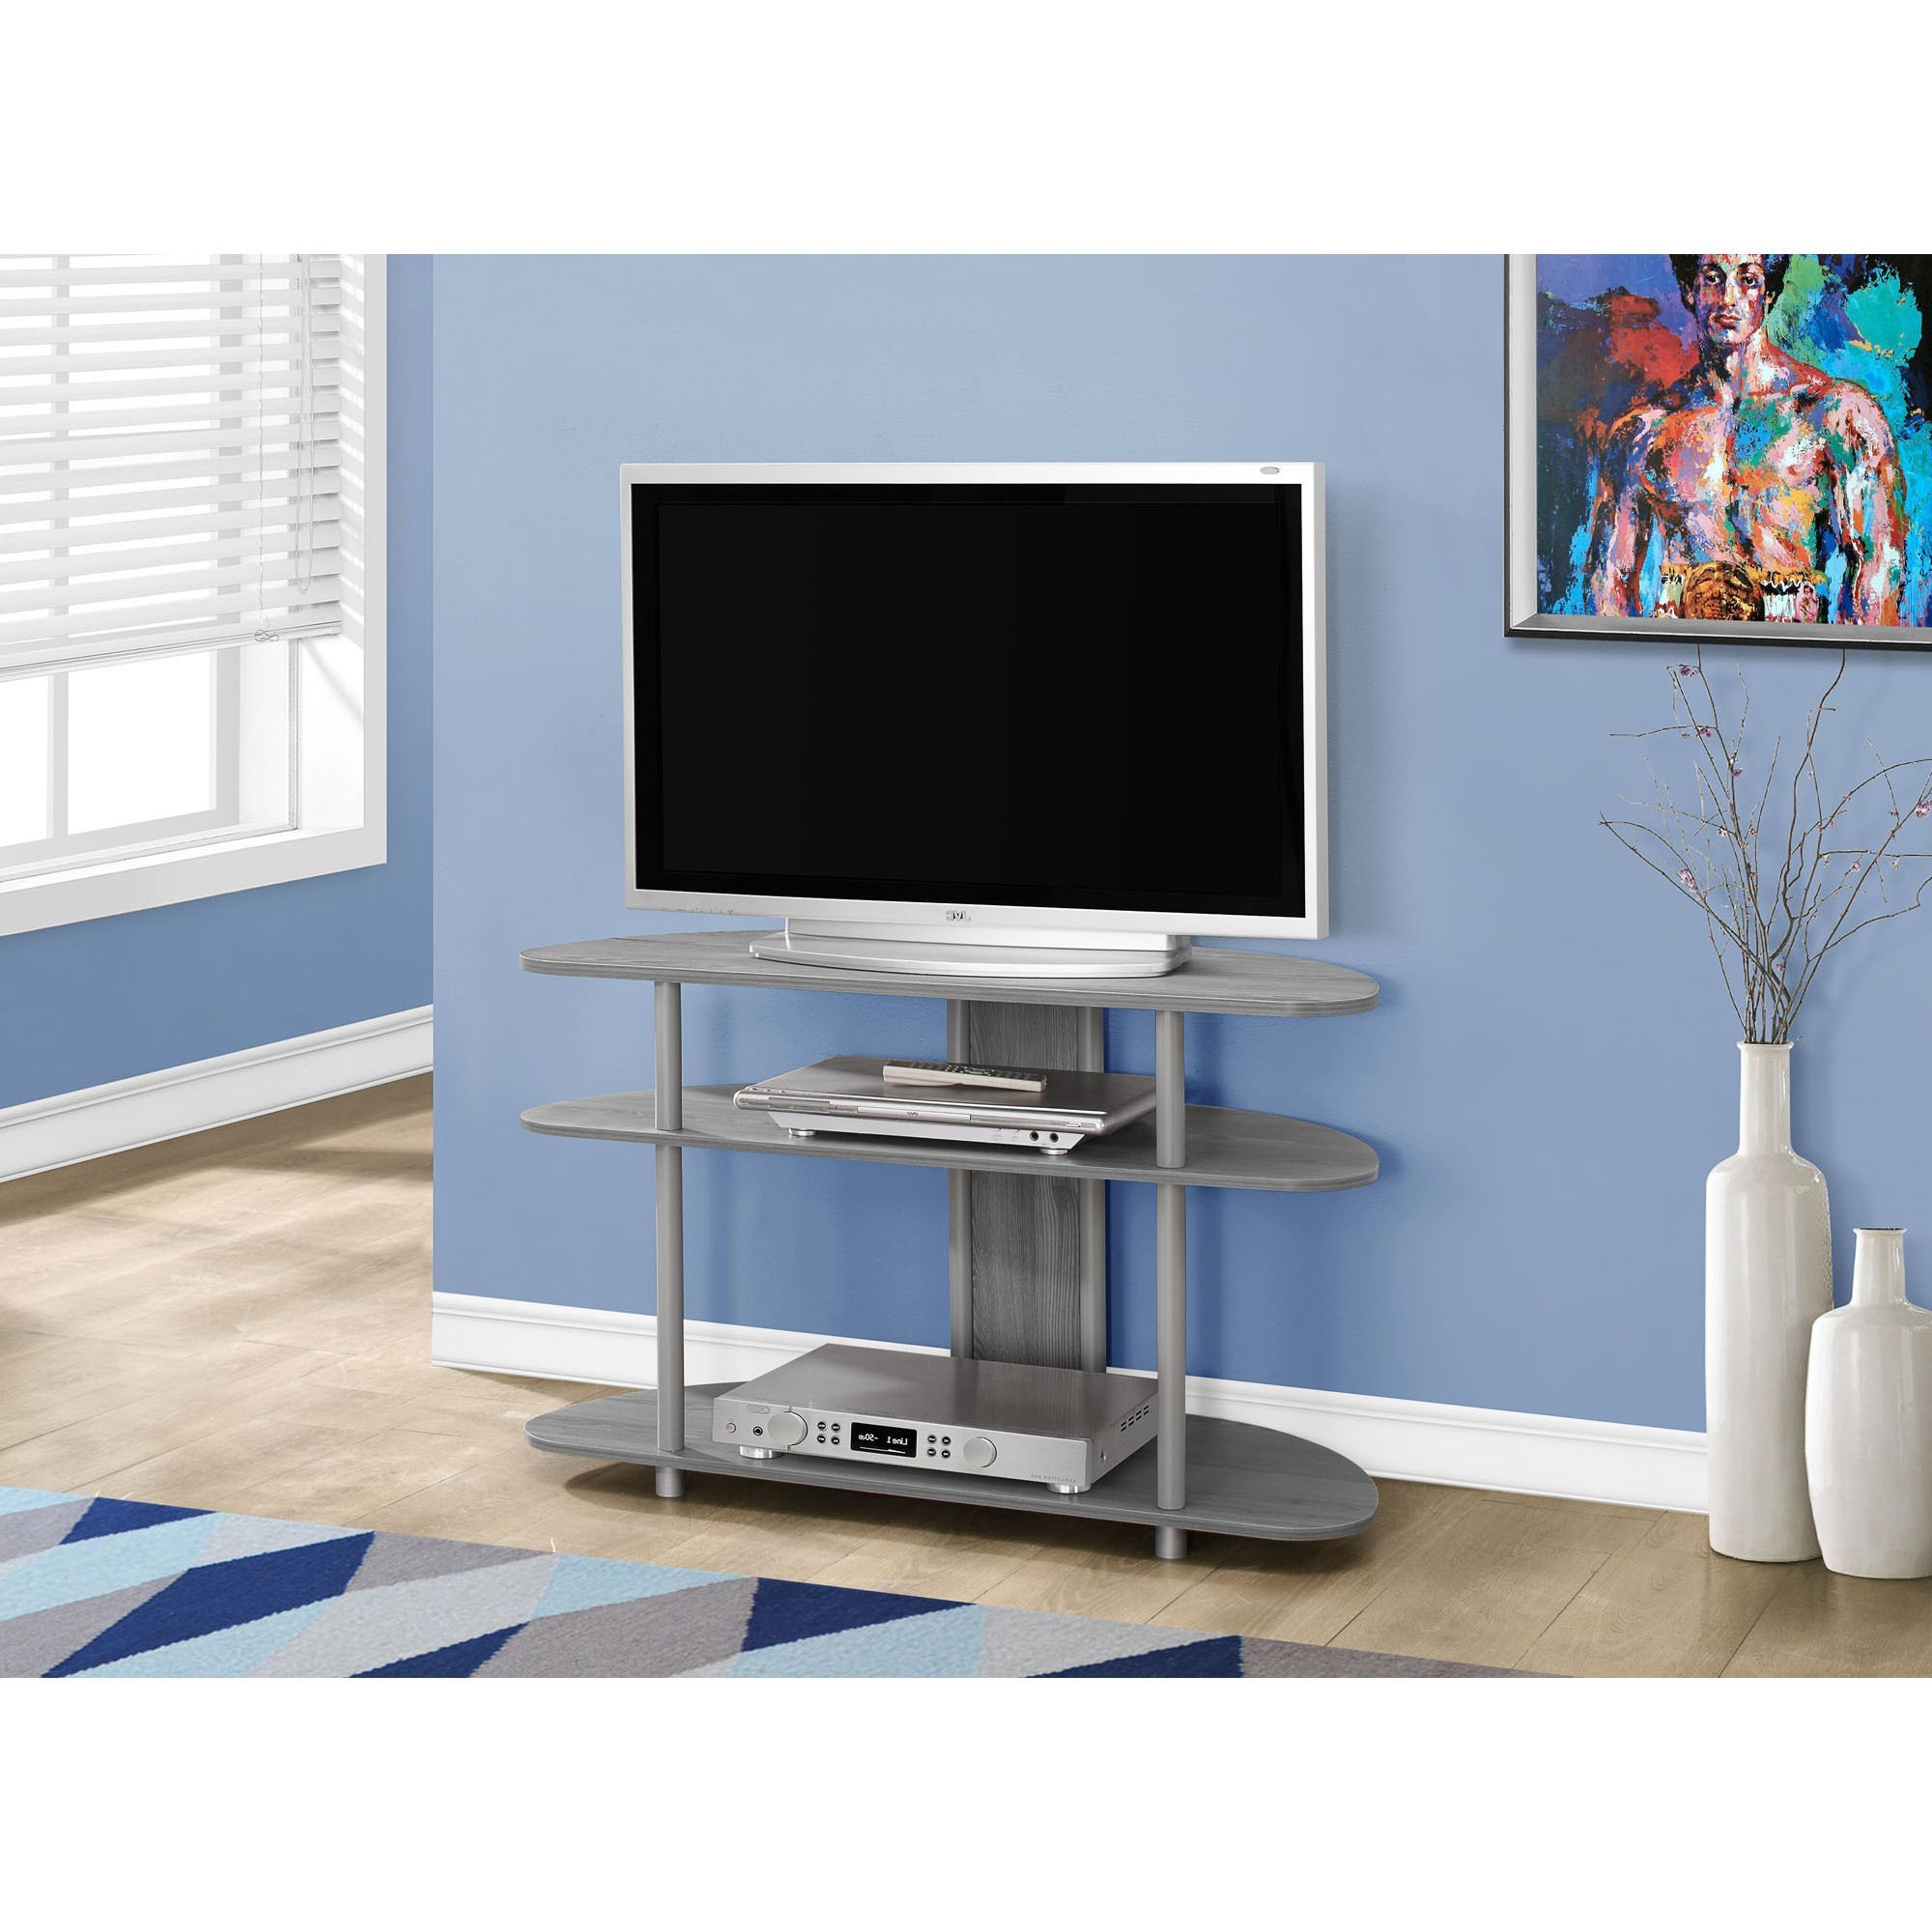 40 Inch Corner Tv Stands Pertaining To Trendy Perfect For Small Spaces, This Slick Grey Corner Tv Stand Is Angled (View 3 of 20)